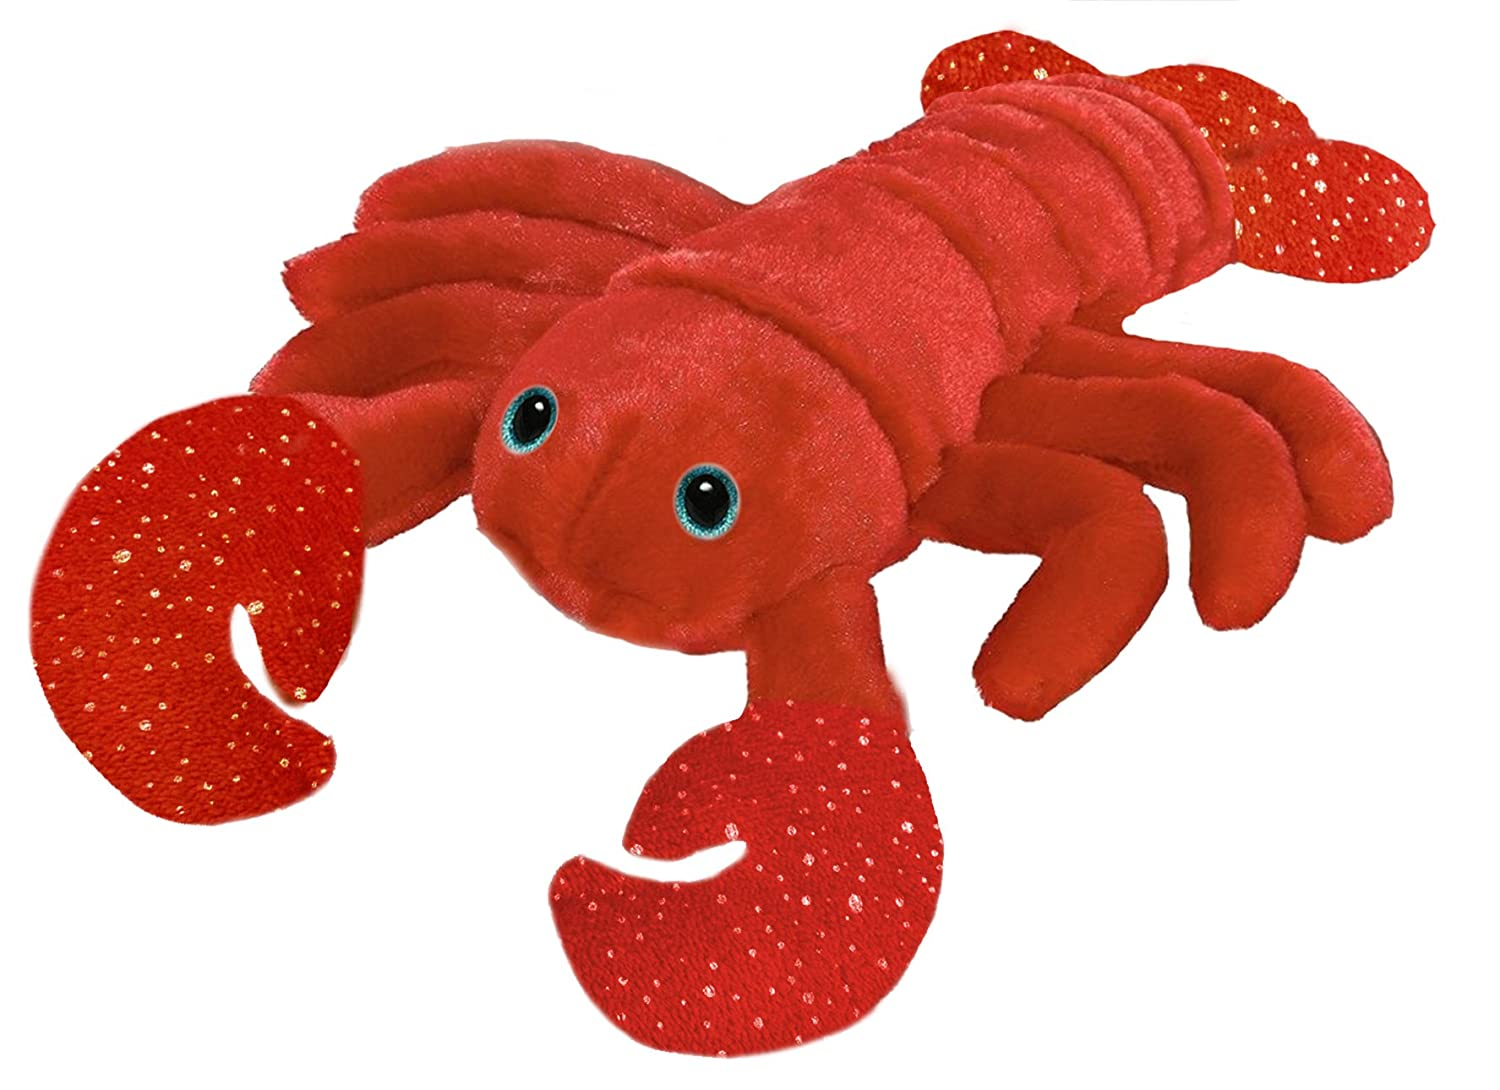 First & Main 7 Red Under The Sea Lobster Basic Plush Toys 8033